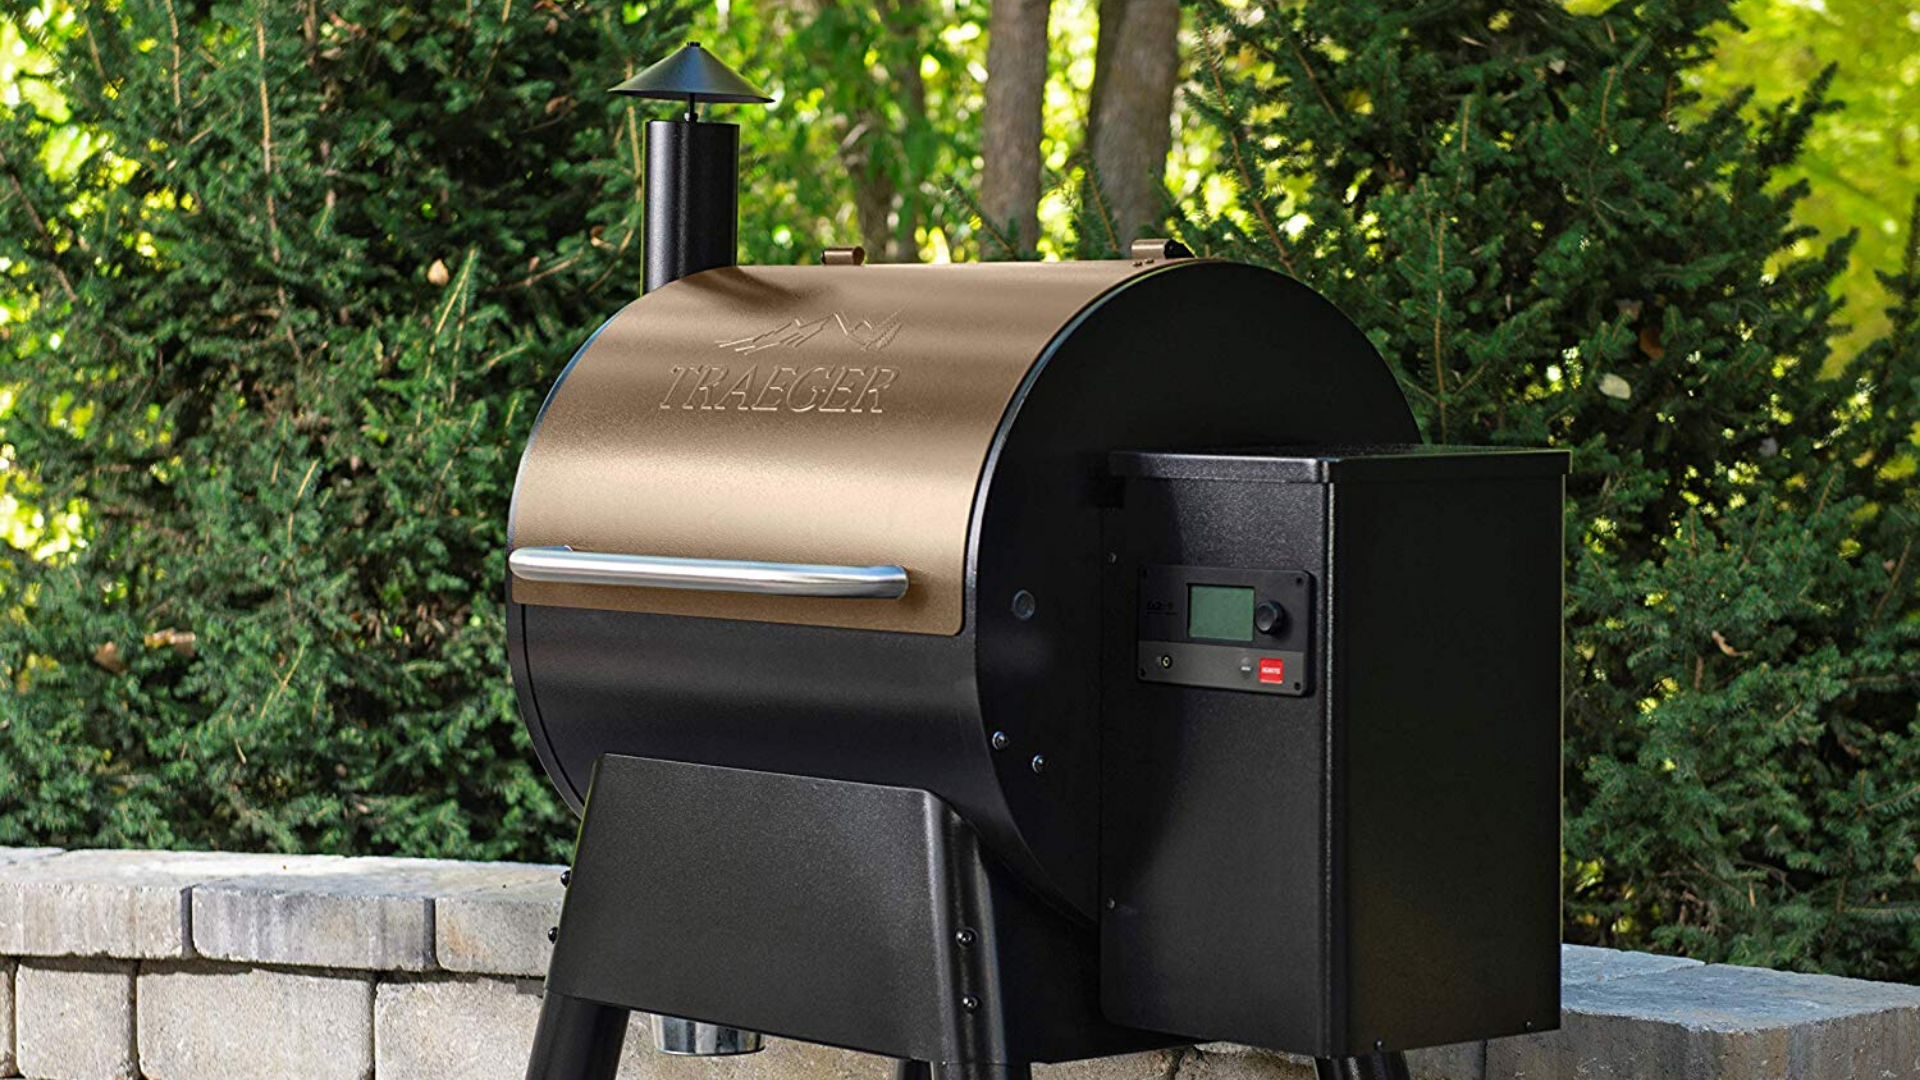 product image of Traeger Pro Series 575 Grill staged outside in backyard